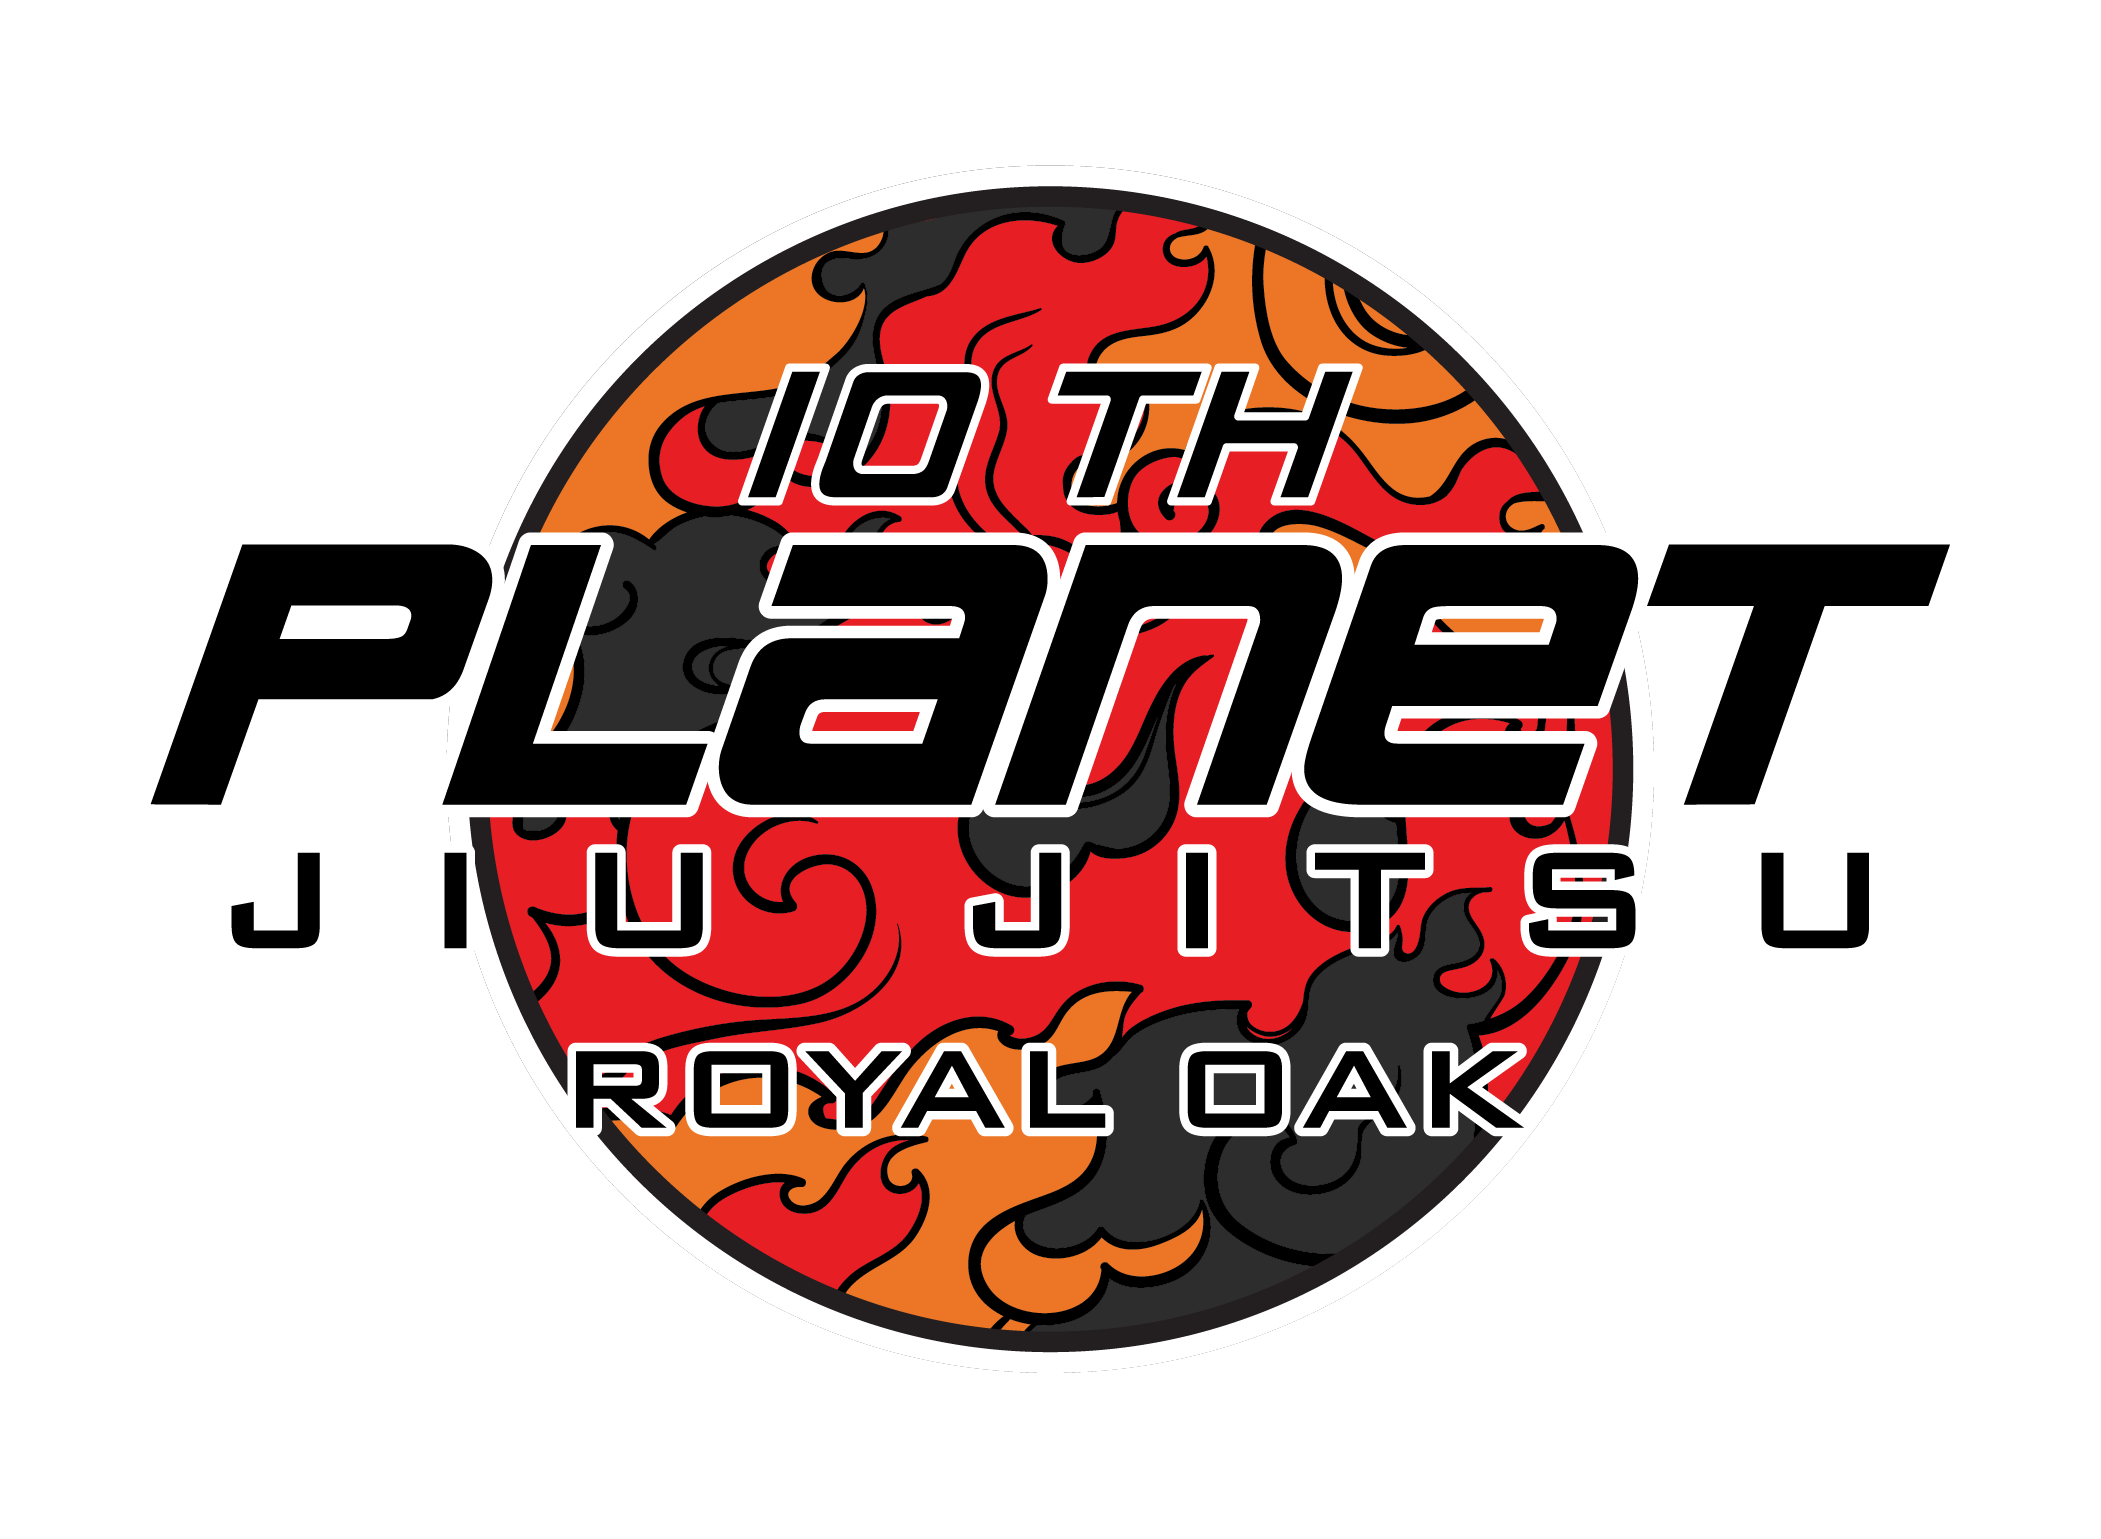 10th Planet Royal Oak